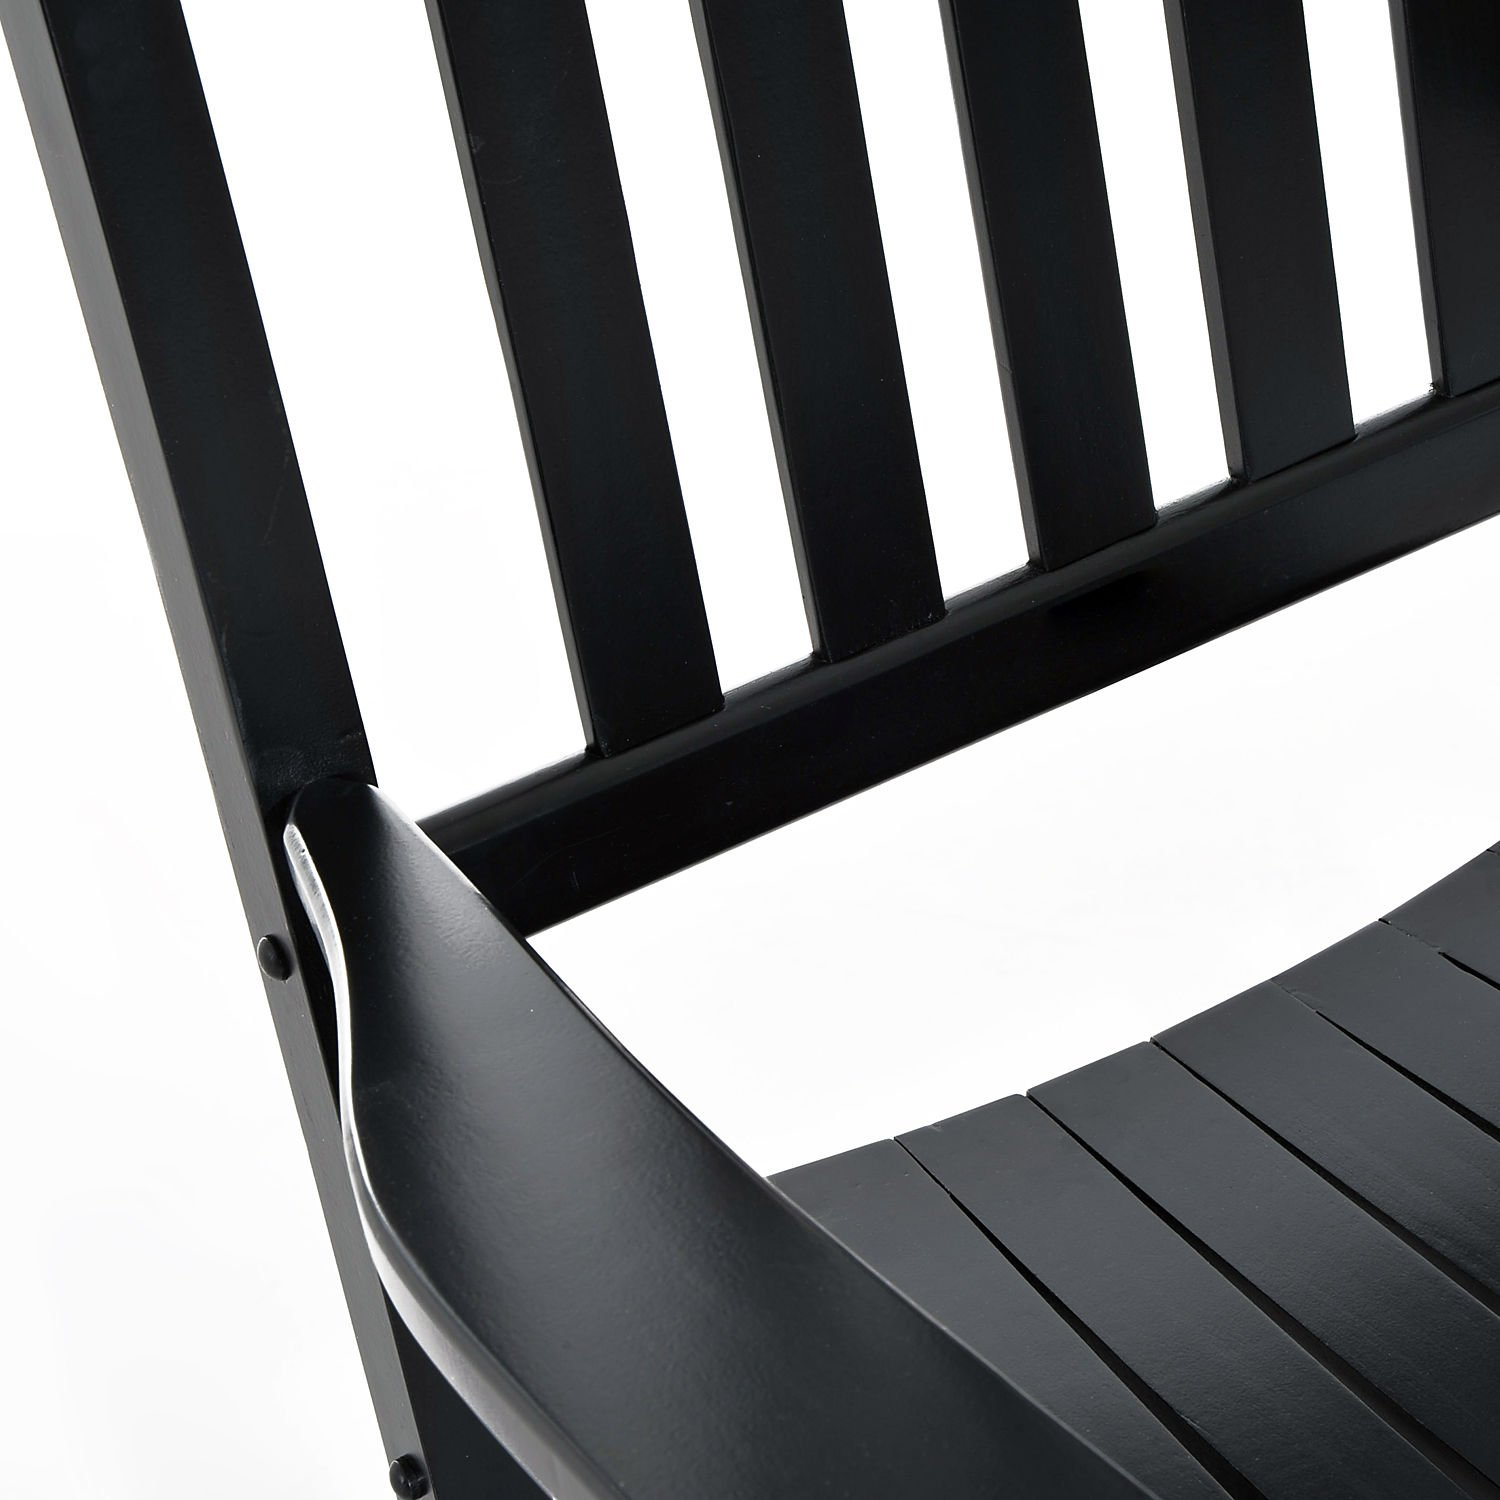 Outsunny Porch Rocking Chair - Outdoor Patio Wooden Rocker - Black by Outsunny (Image #6)